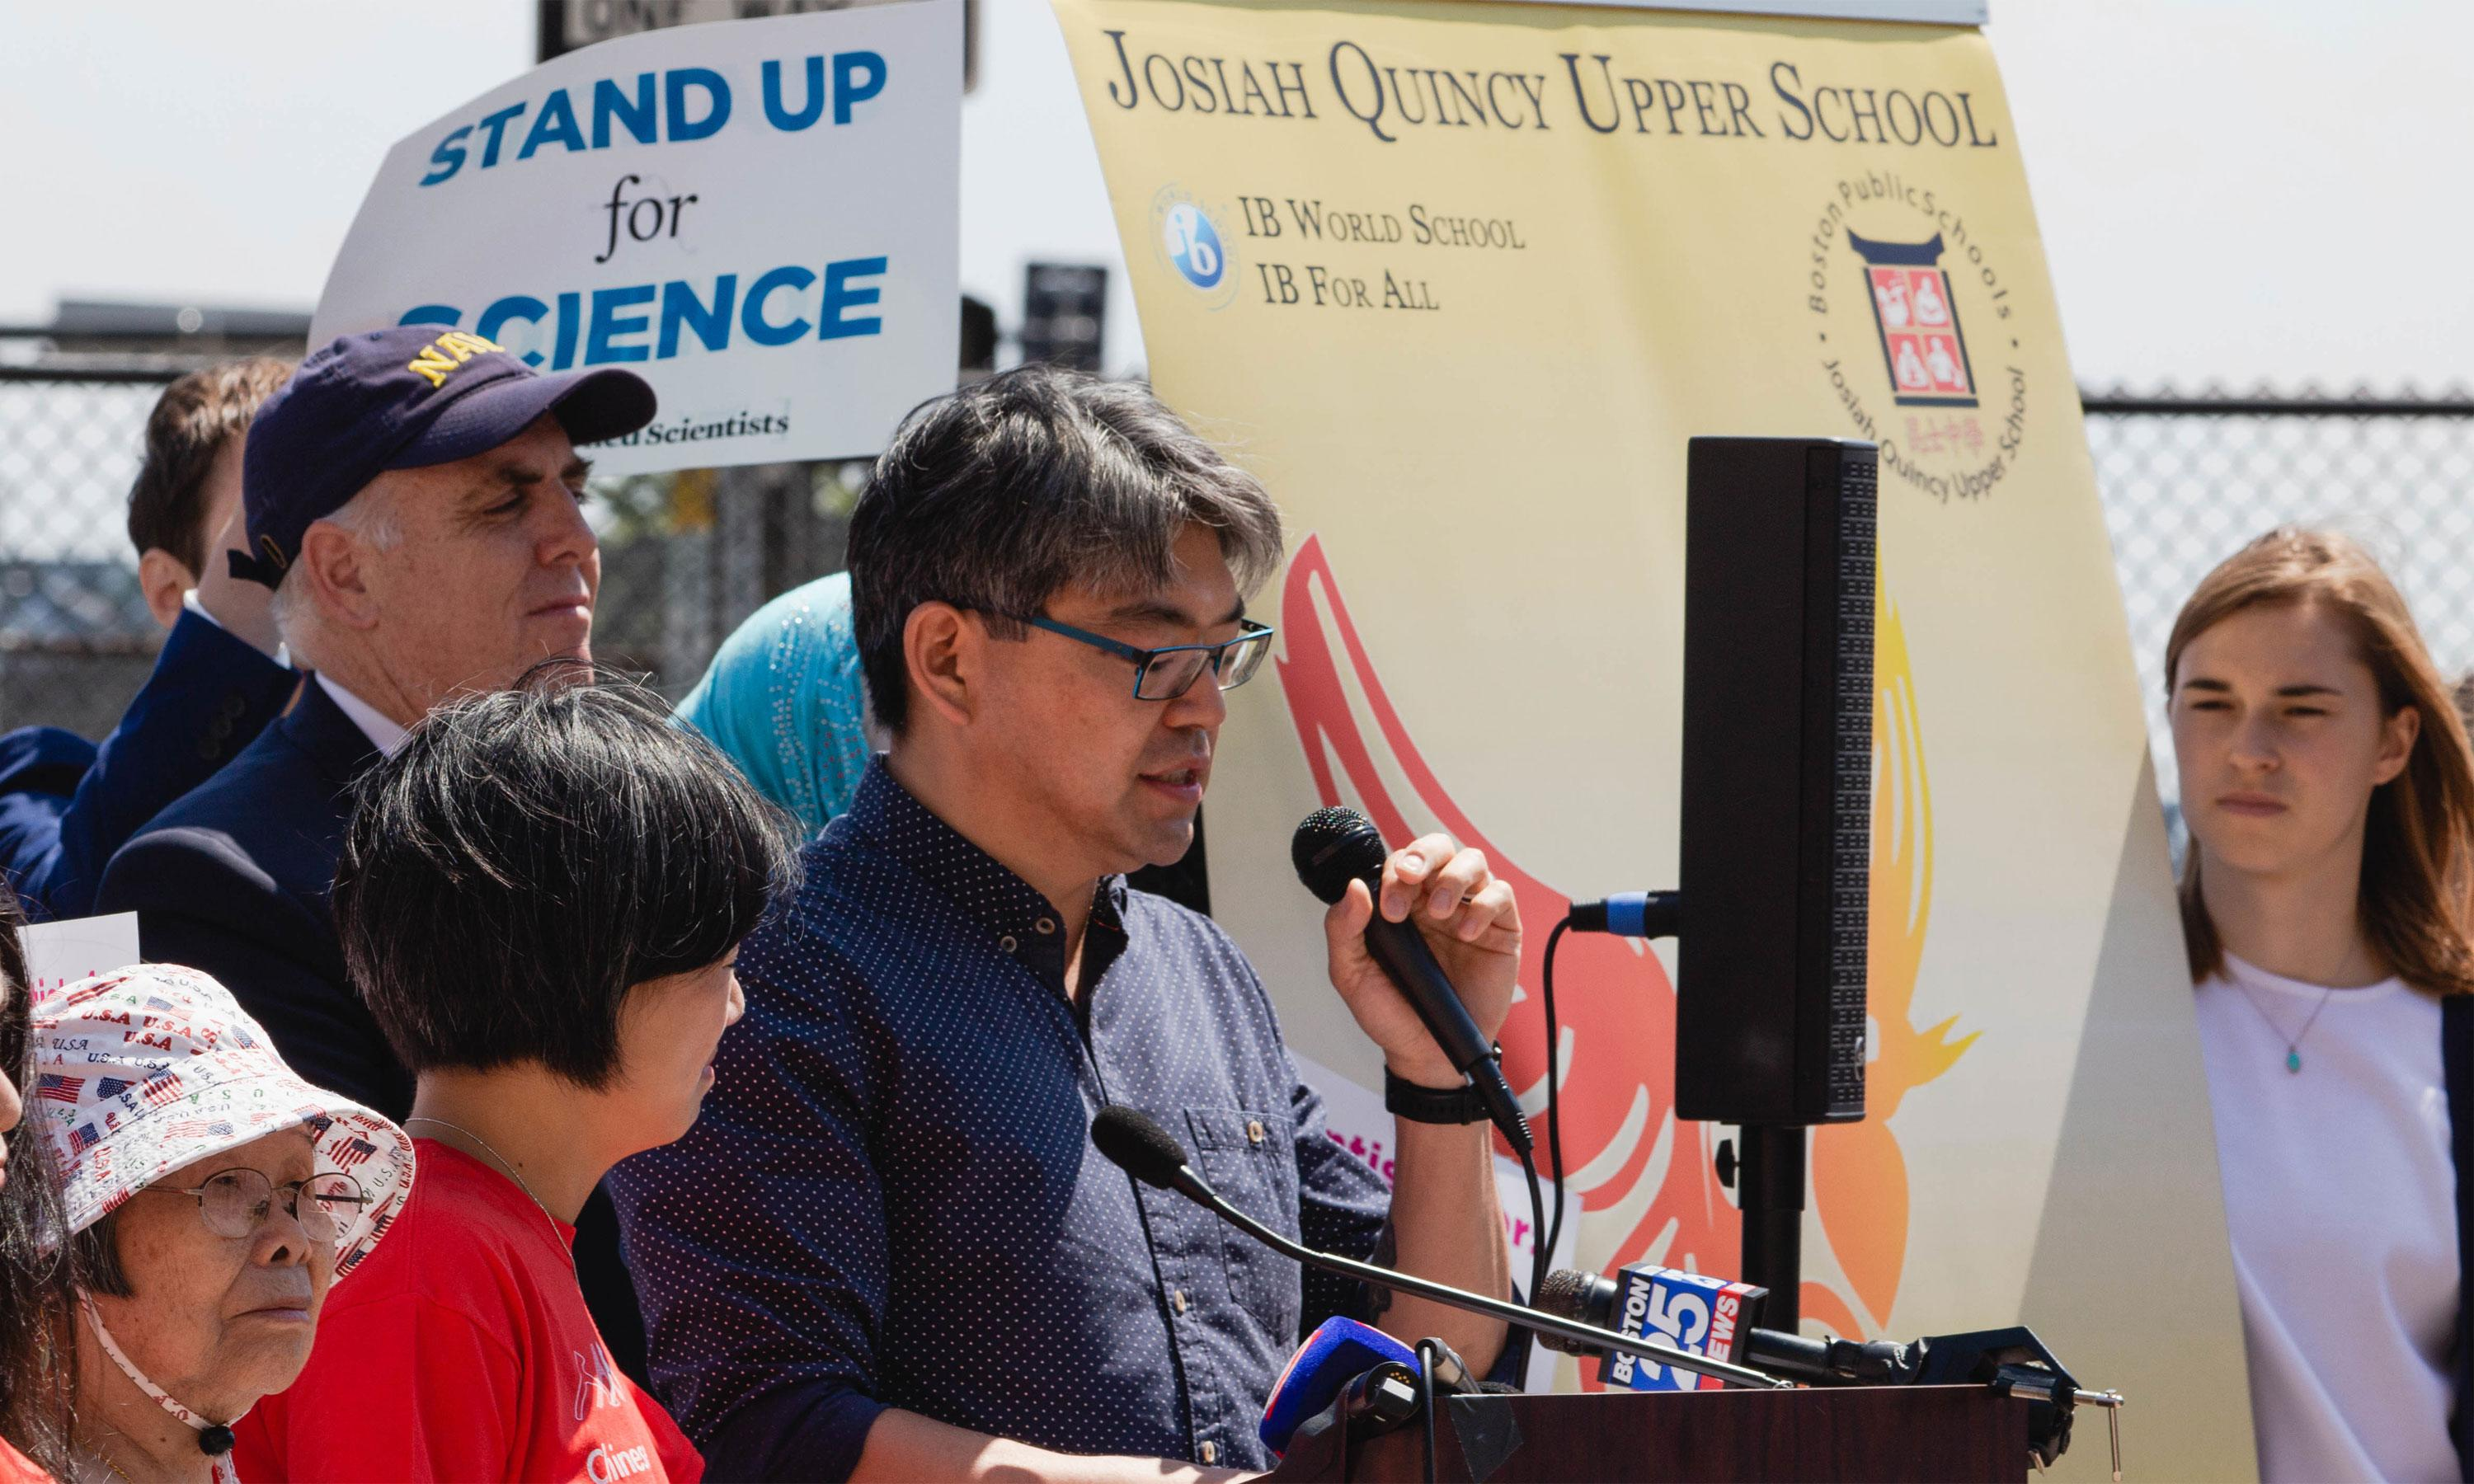 speaking at the mic with stand up for science behind